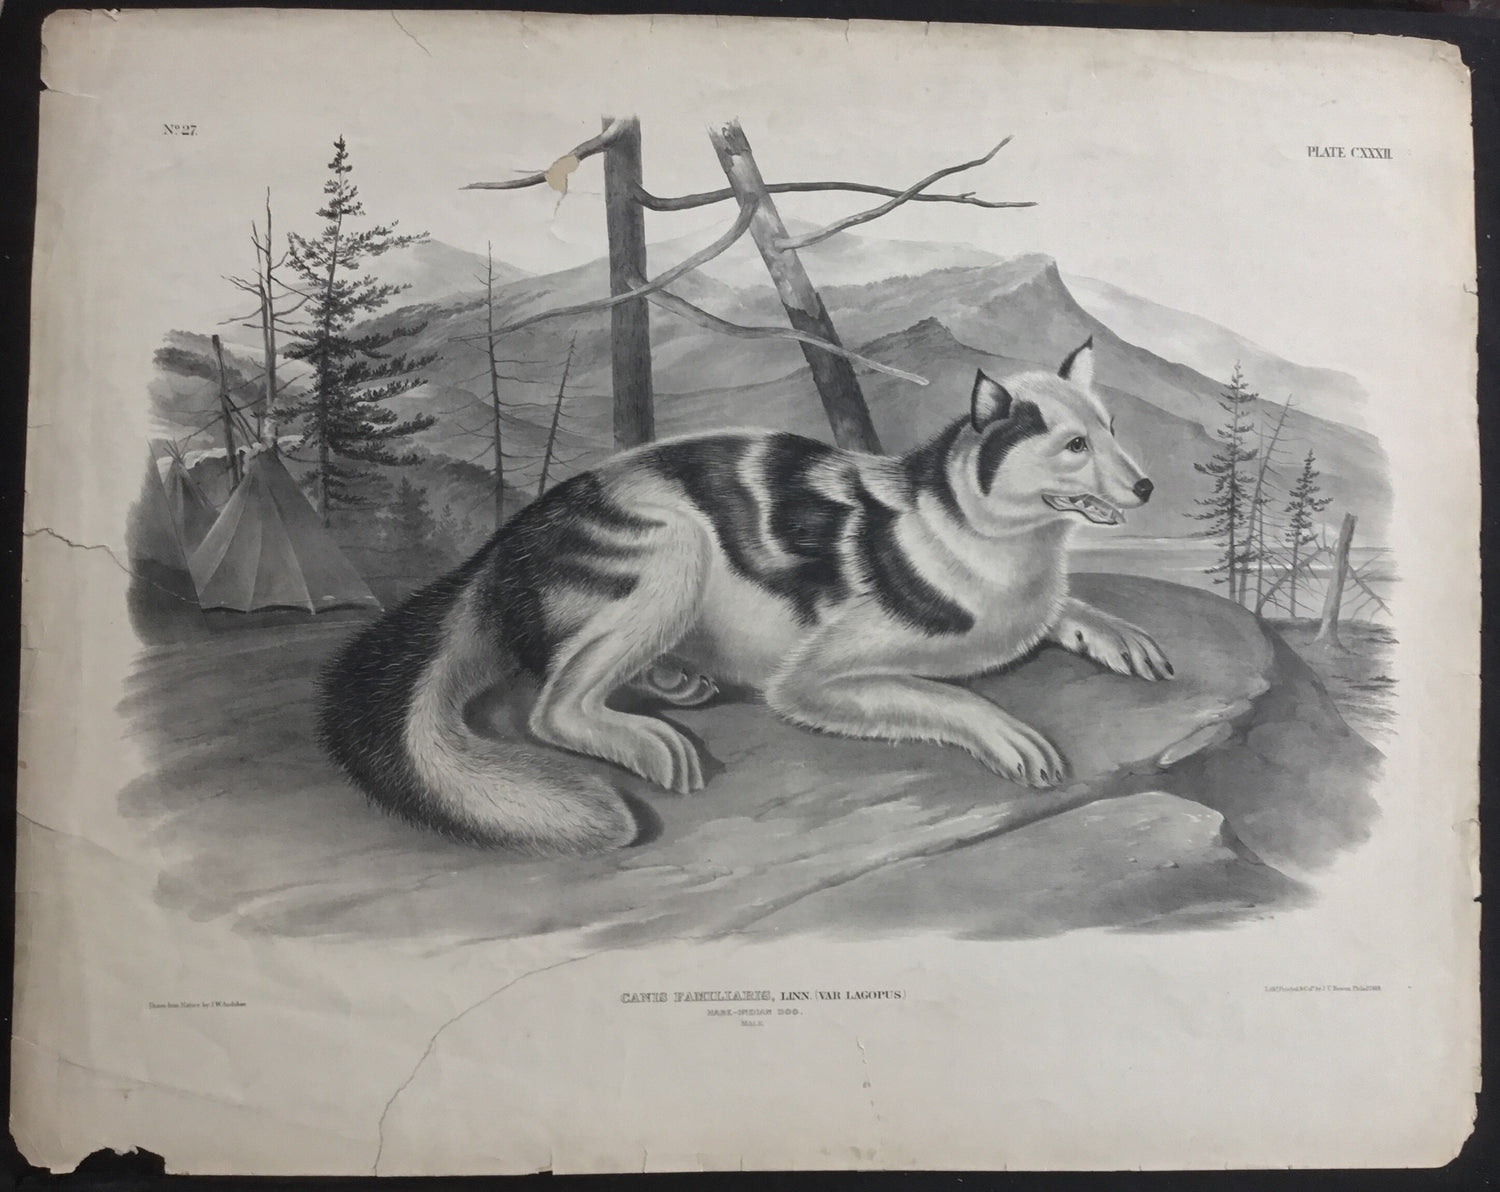 Lord-Hopkins Collection, Audubon Original Imperial plate 132, Hare Indian Dog